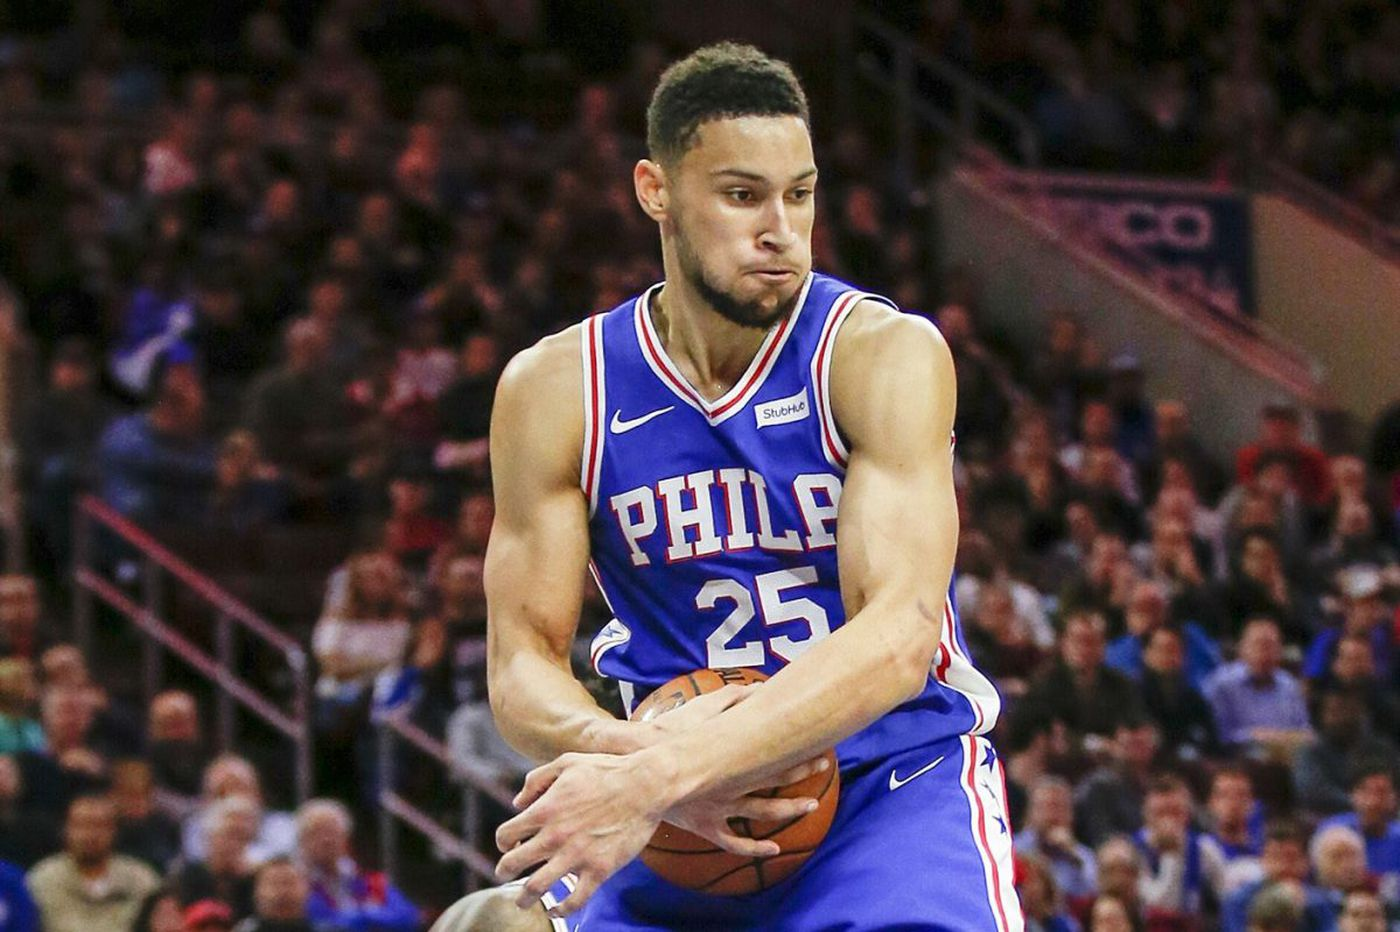 Sixers' Ben Simmons to play, guard LeBron James